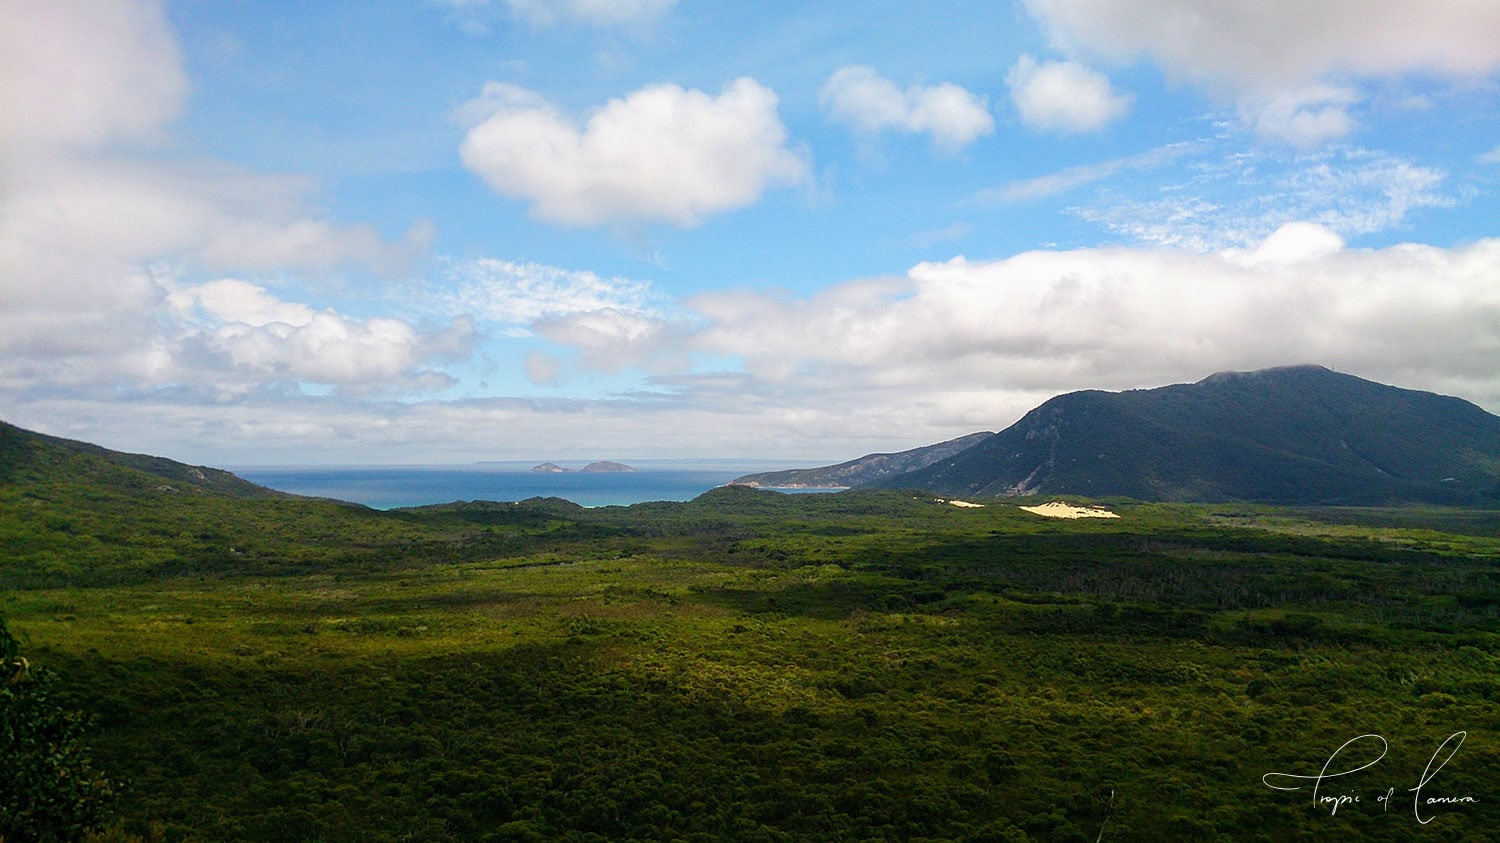 View towards ocean and mountain in Wilson's Promontory National Park